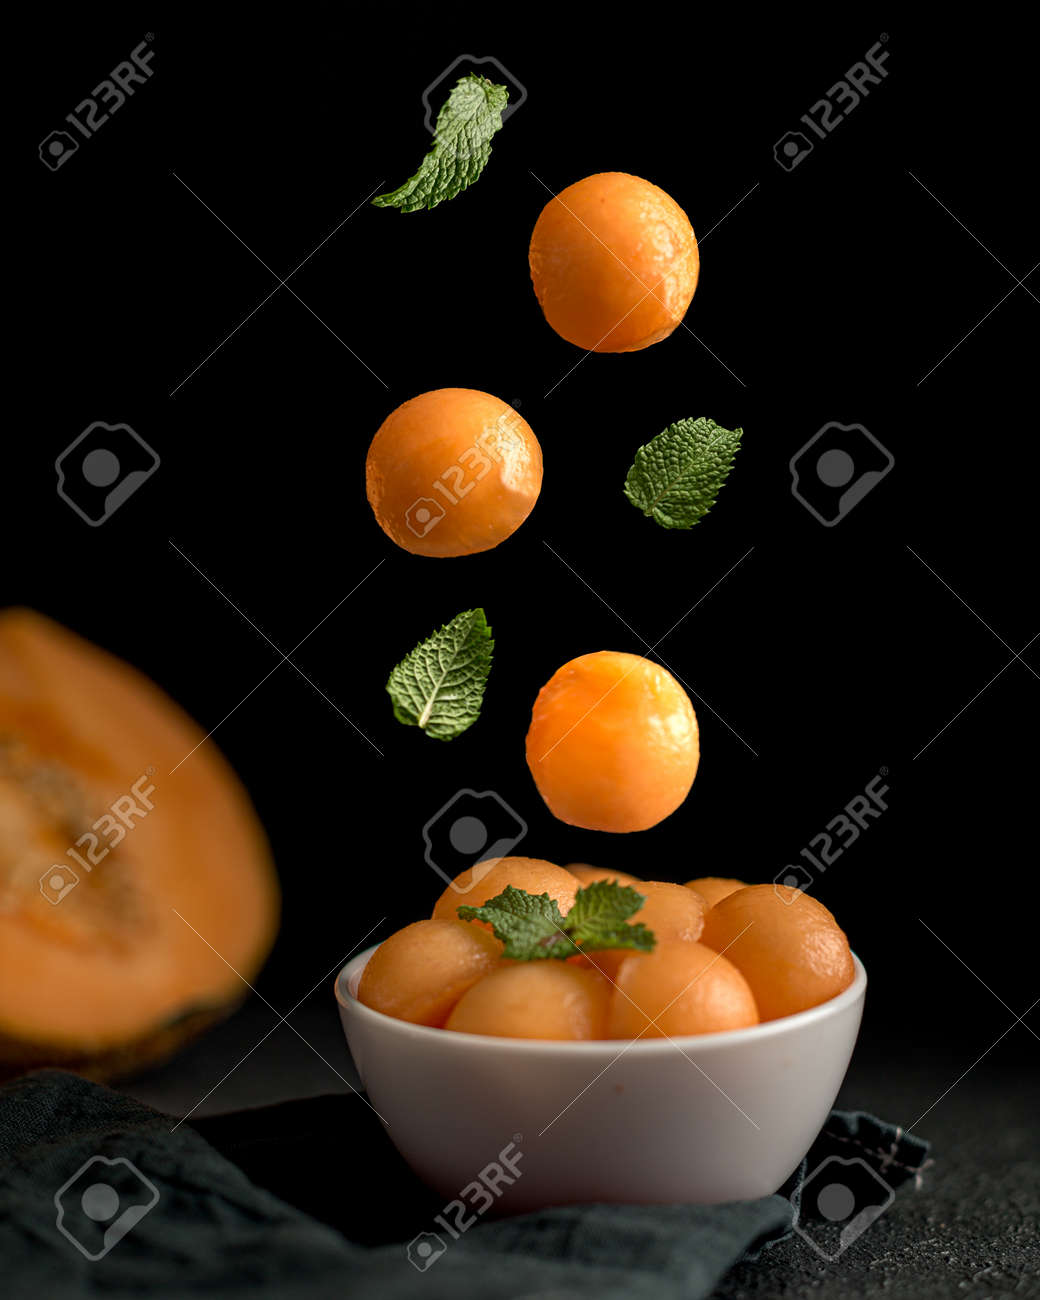 Creative concept with falling food on black backdrop - 173342449